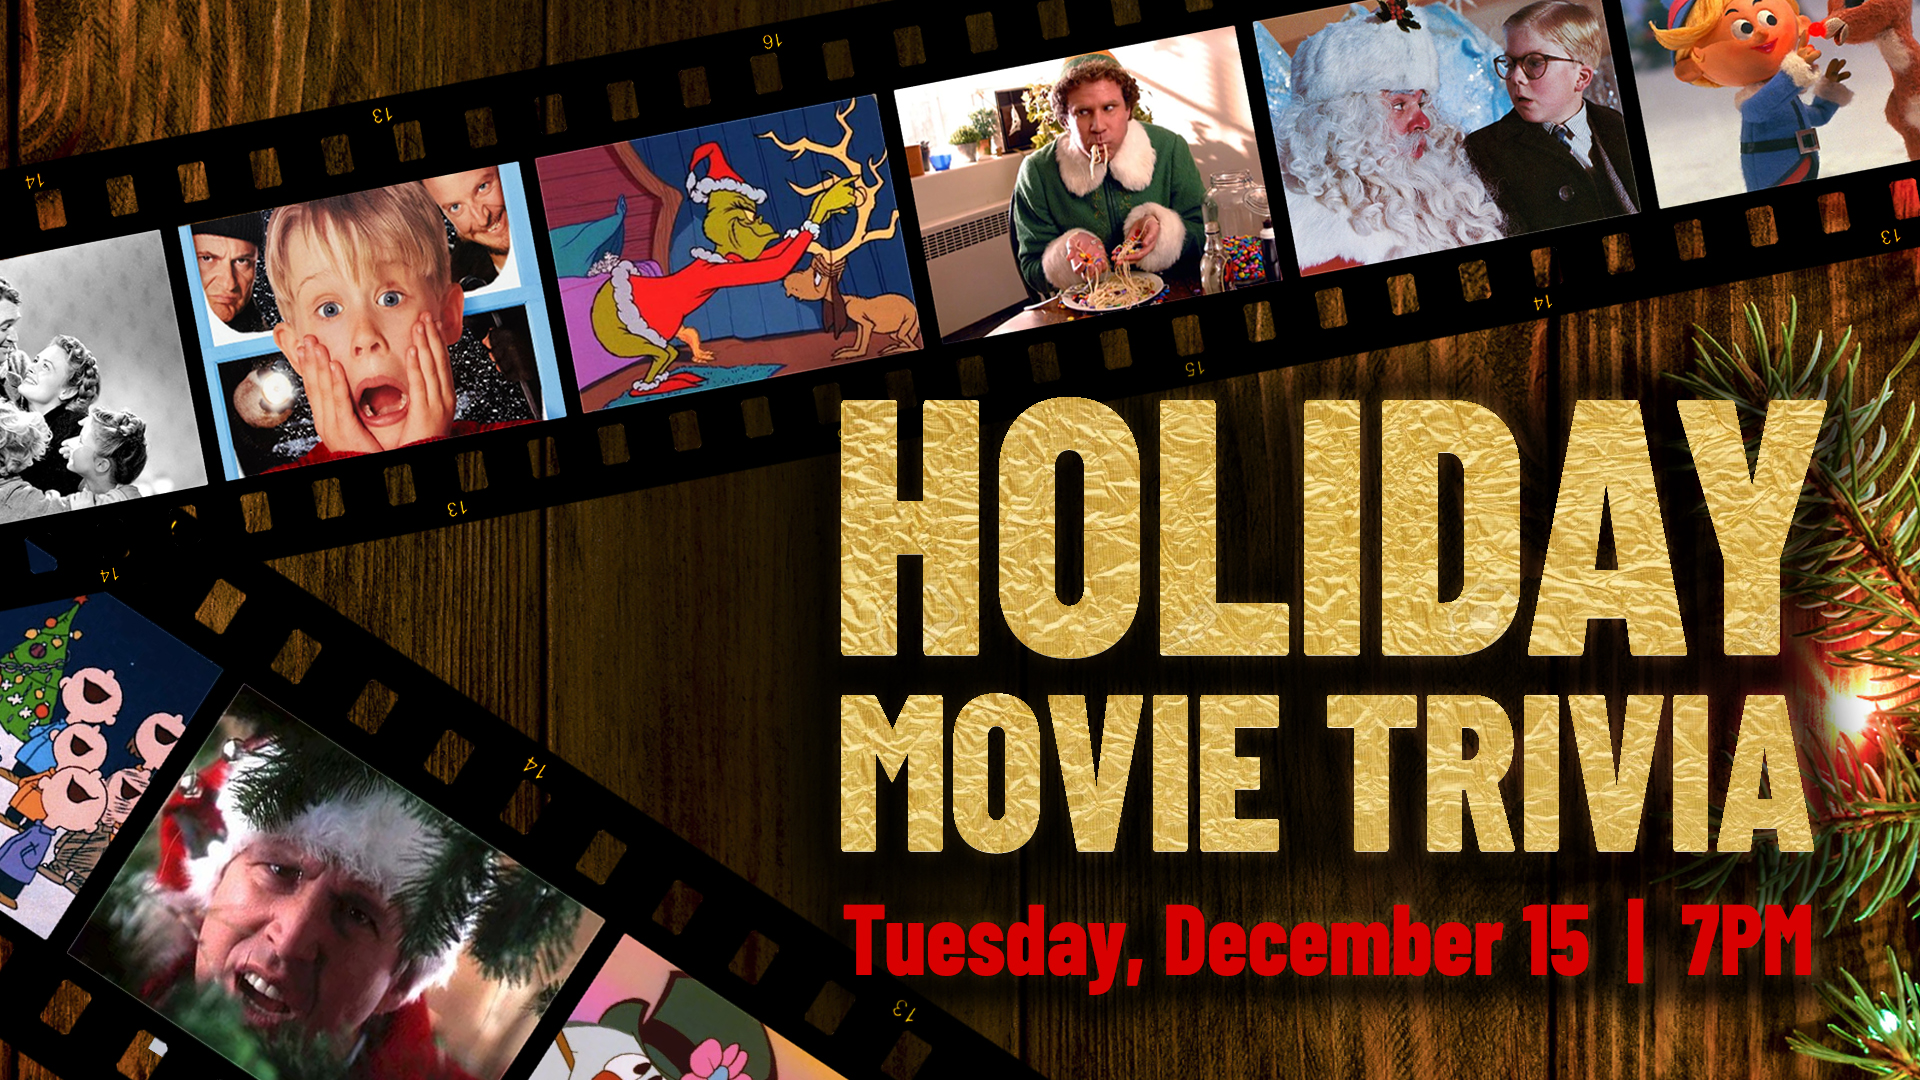 Promo image of Holiday Movie Trivia